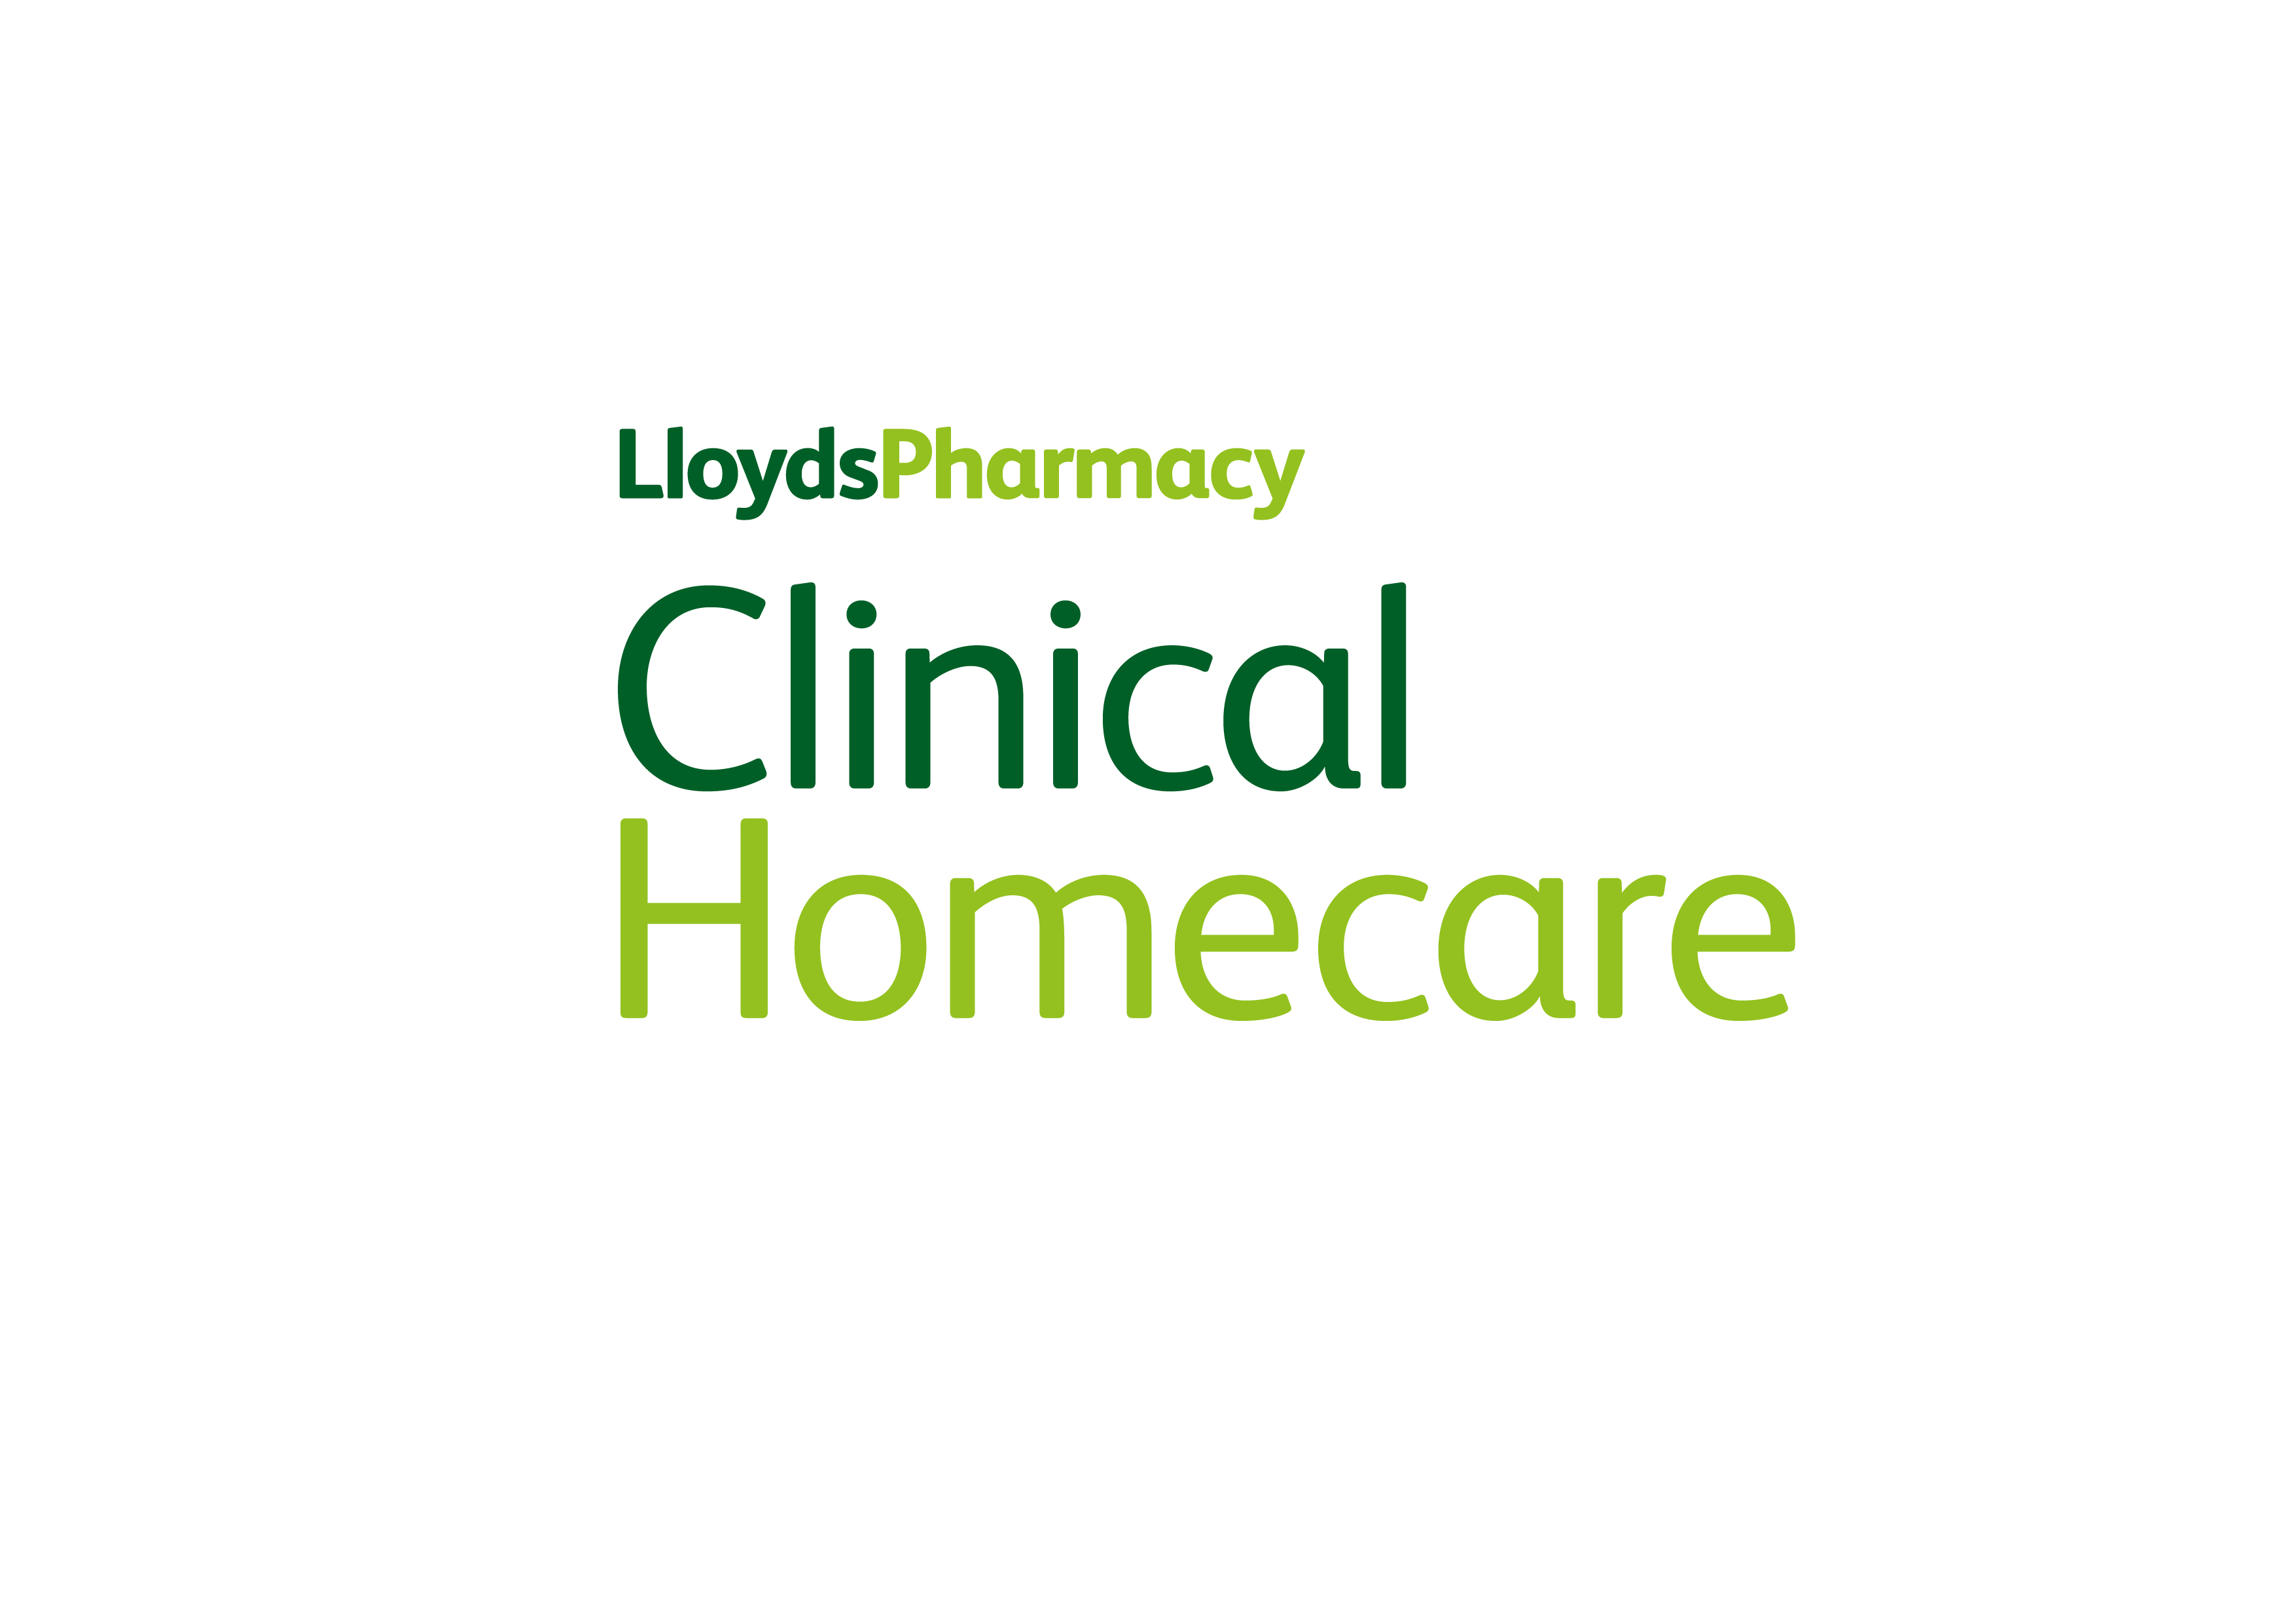 Clinical Homecare